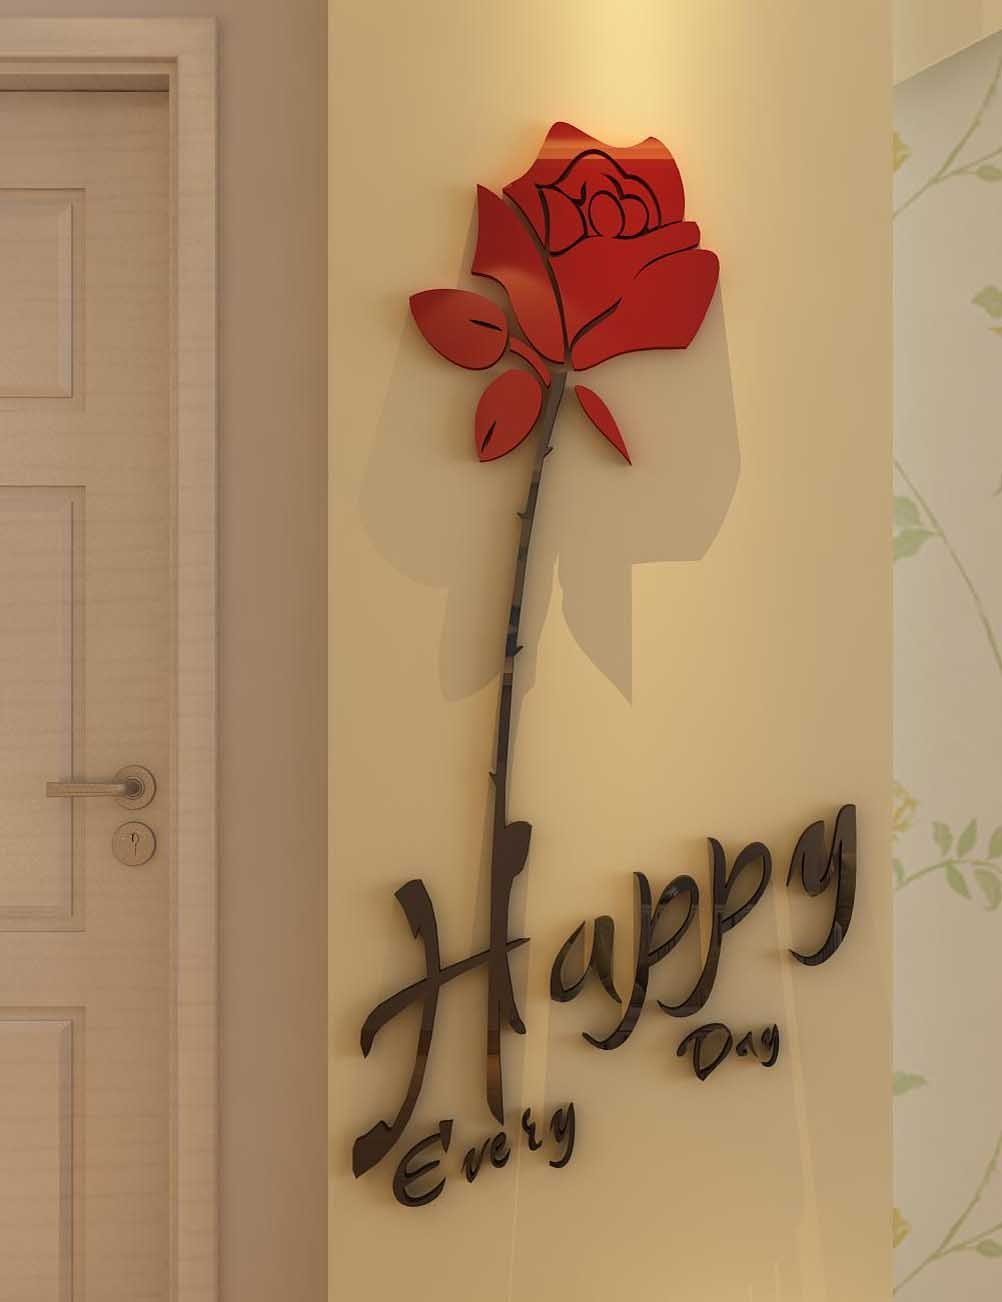 3d Roses Happy Every Day Wall Stickers & Murals Wall Decals Wallpaper Wall Decorate Wall Décor Decorative Painting Supplies Living Room bedroom,Originality Stickers Gift, DIY by DecorSmart